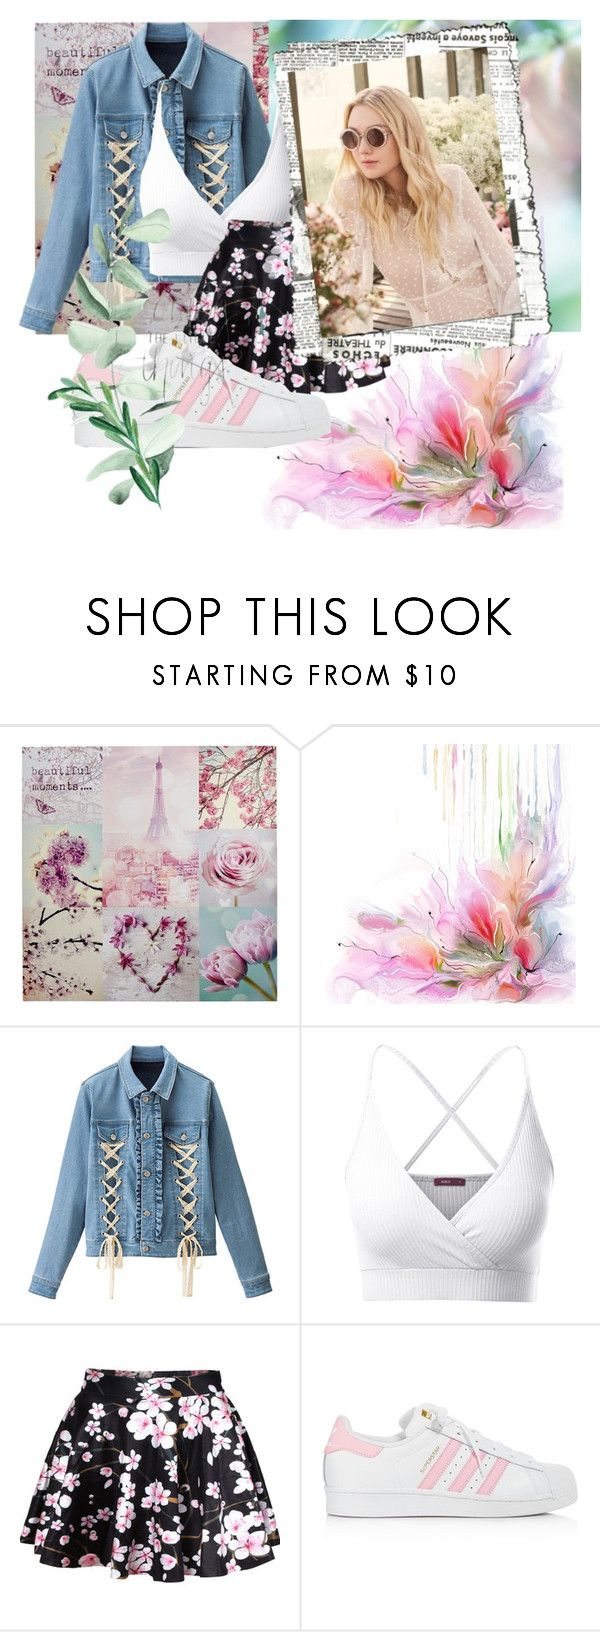 """""""Untitled #146"""" by rcs-show-show1 ❤ liked on Polyvore featuring RyuRyu, Doublju, WithChic, adidas and Jimmy Choo"""